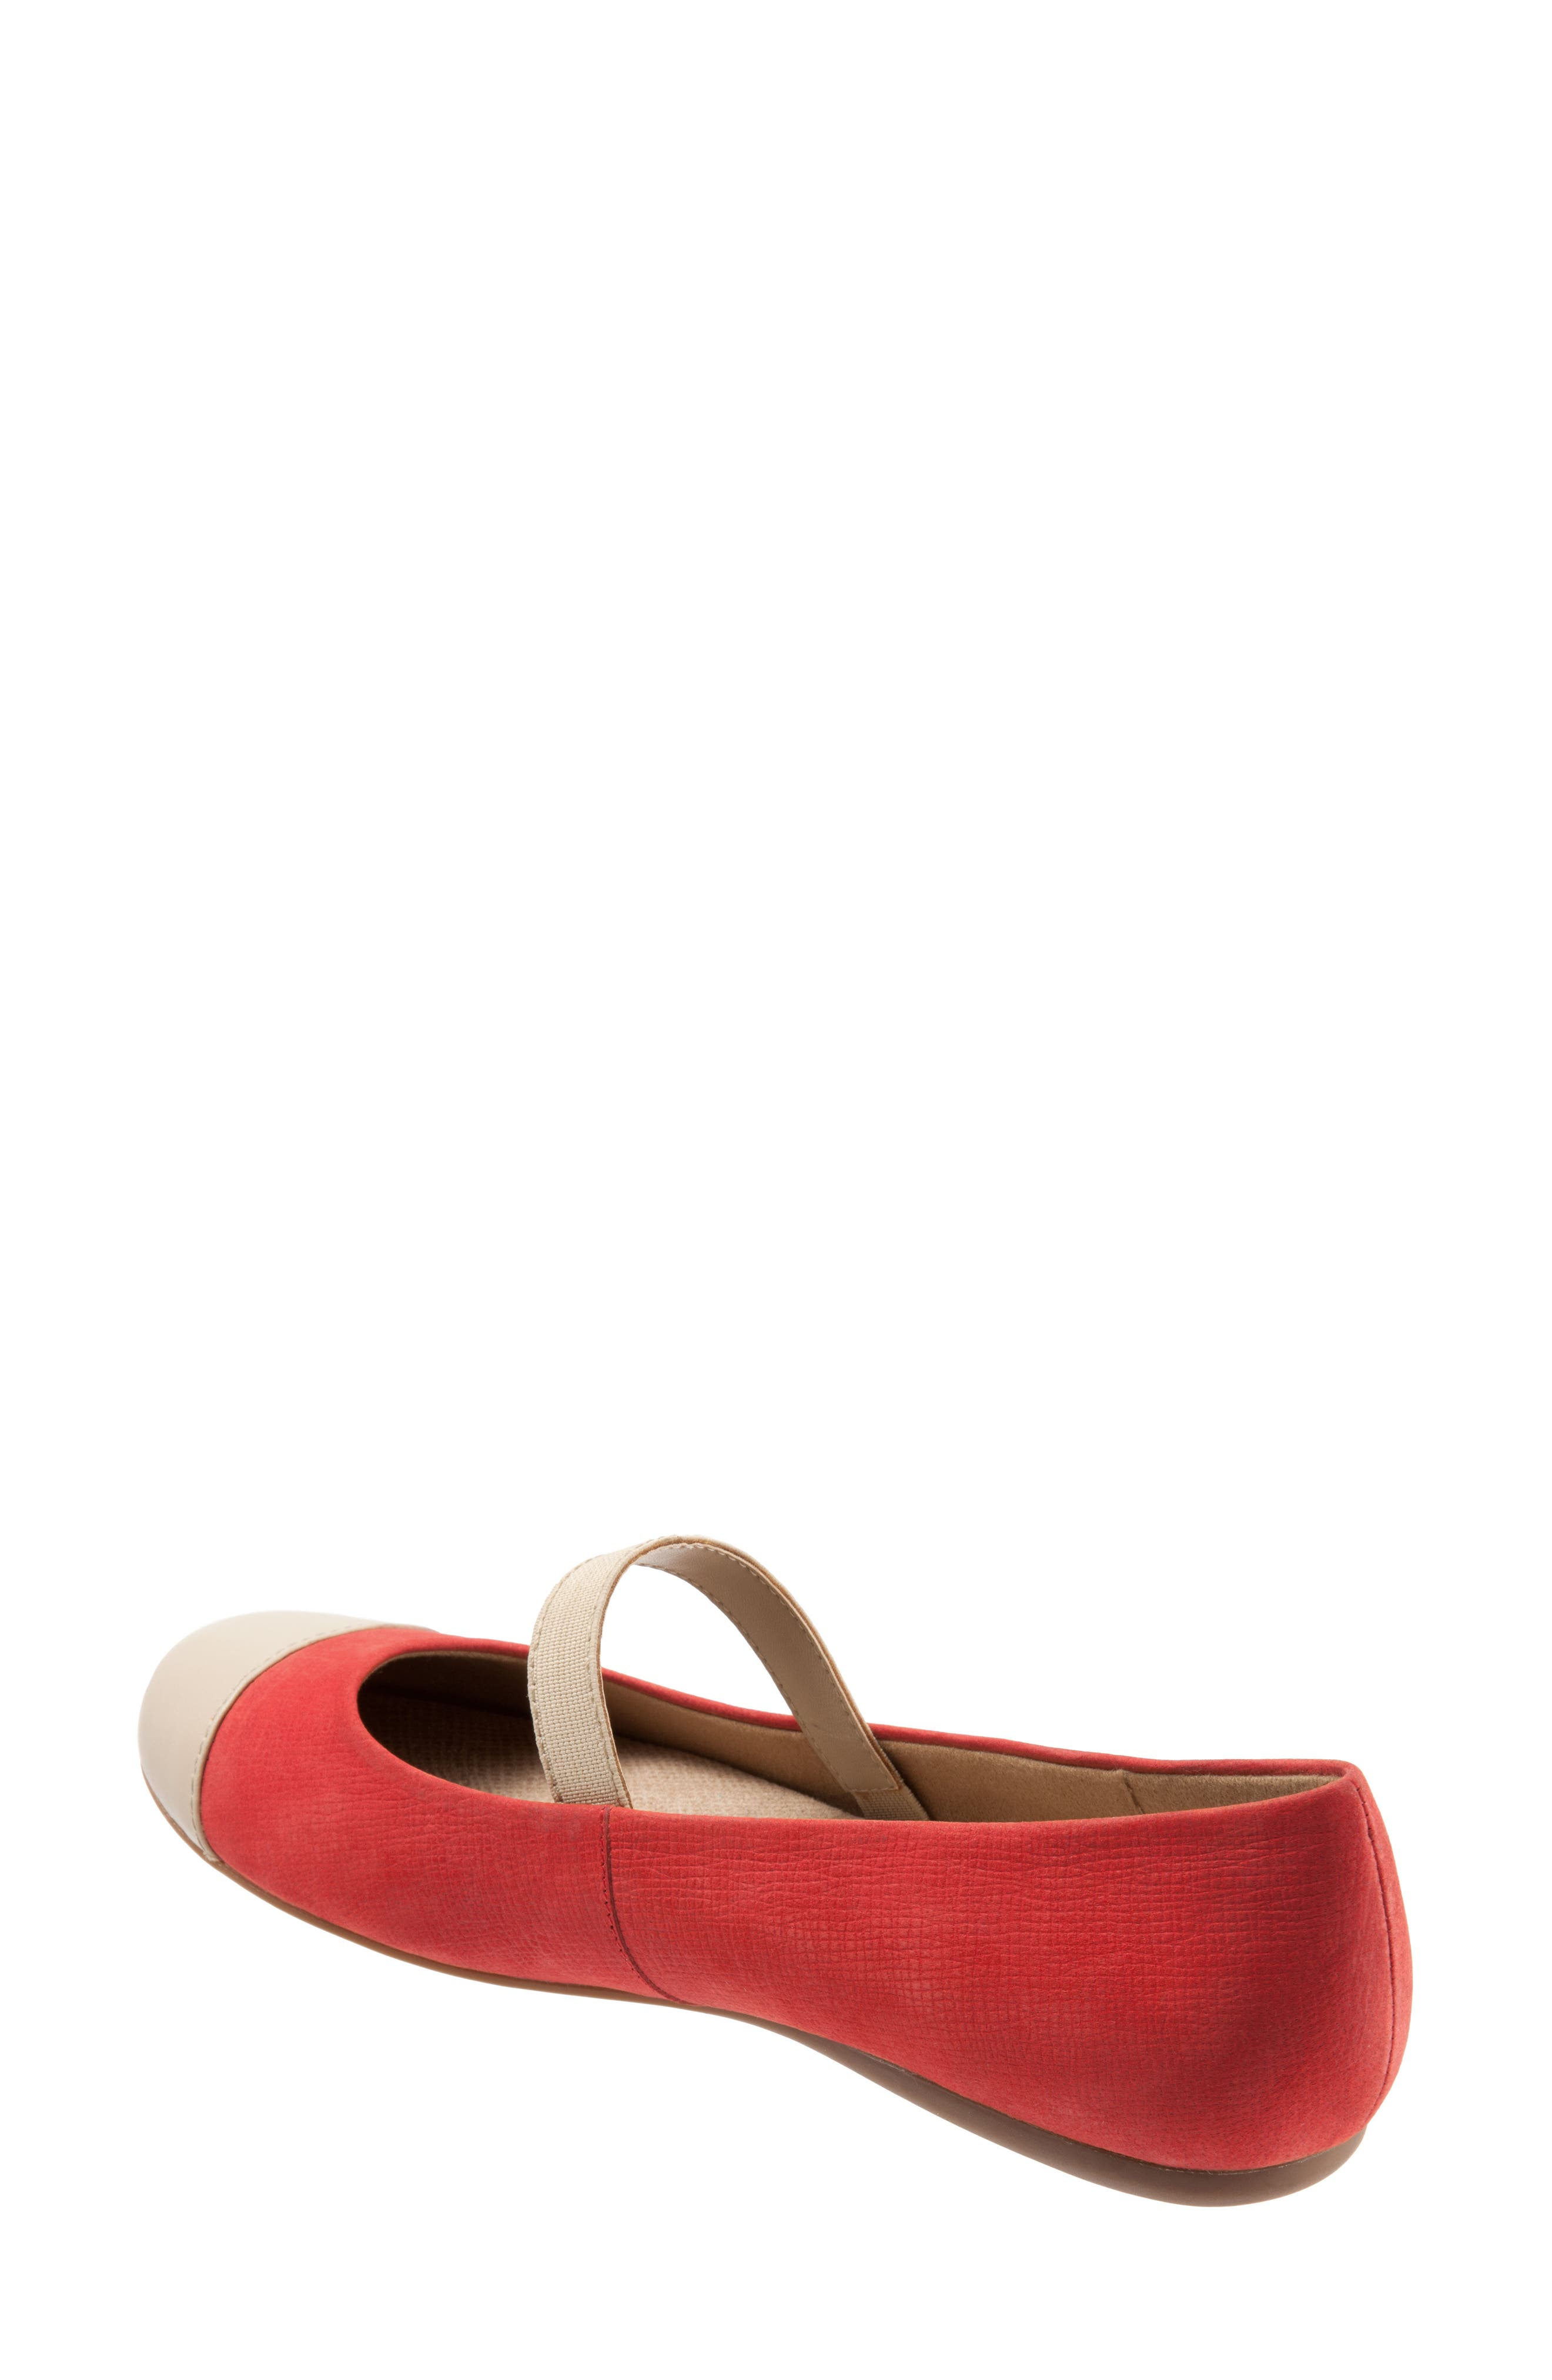 Napa Mary Jane Flat,                             Alternate thumbnail 2, color,                             Red/ Nude Leather